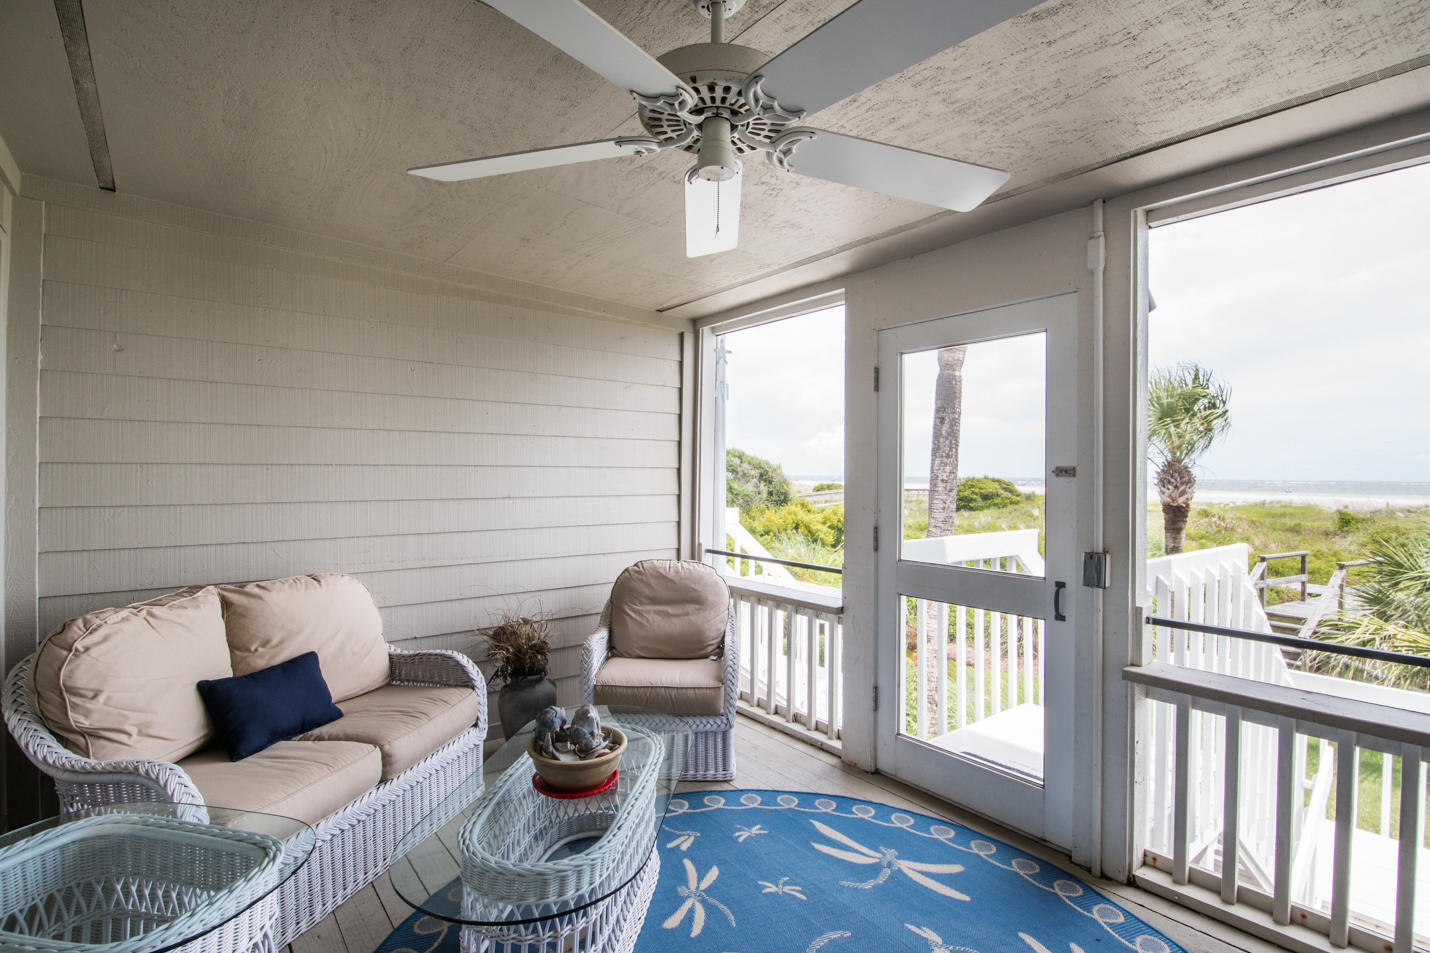 Beach Club Villas Homes For Sale - 66 Beach Club Villas, Isle of Palms, SC - 33